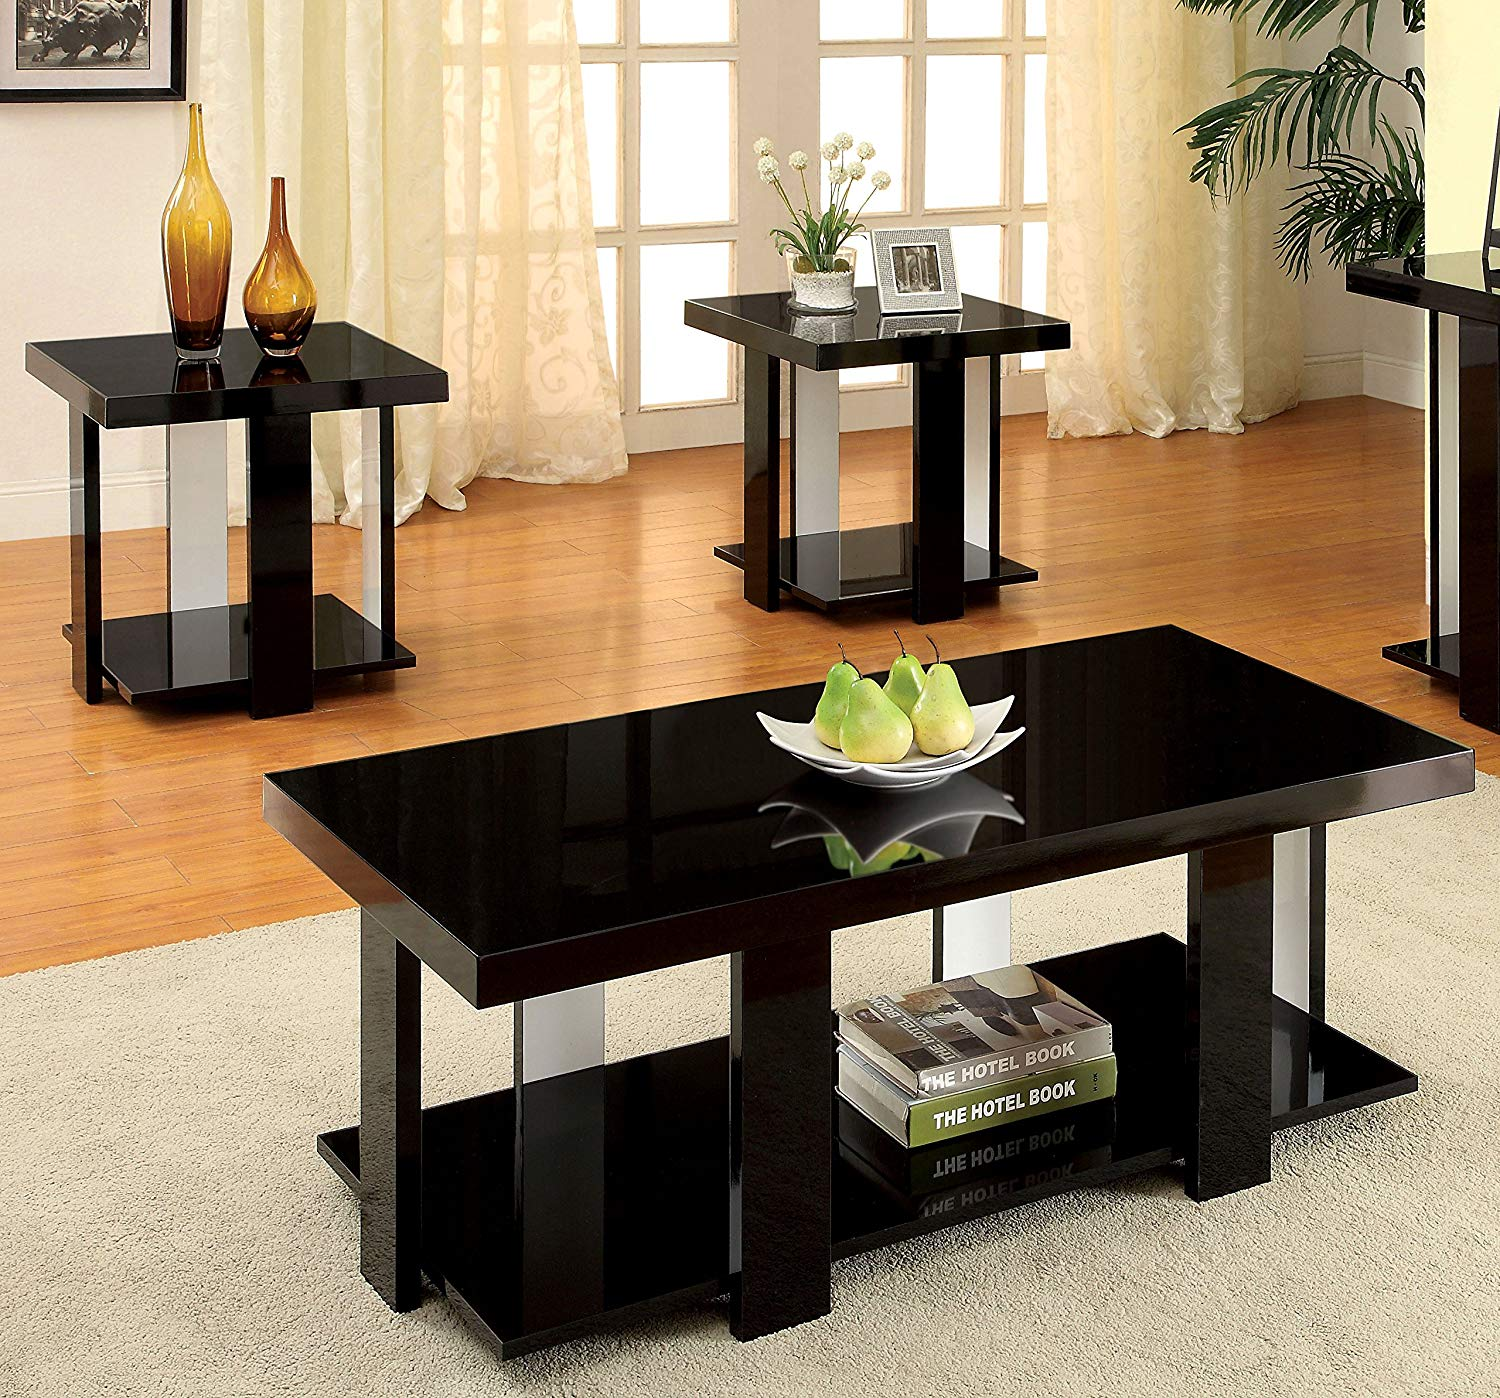 living room inch accent table small narrow end unique slim coffee tables and side tall for full size canopy umbrella pottery barn frog drum black steel legs sofa console garden